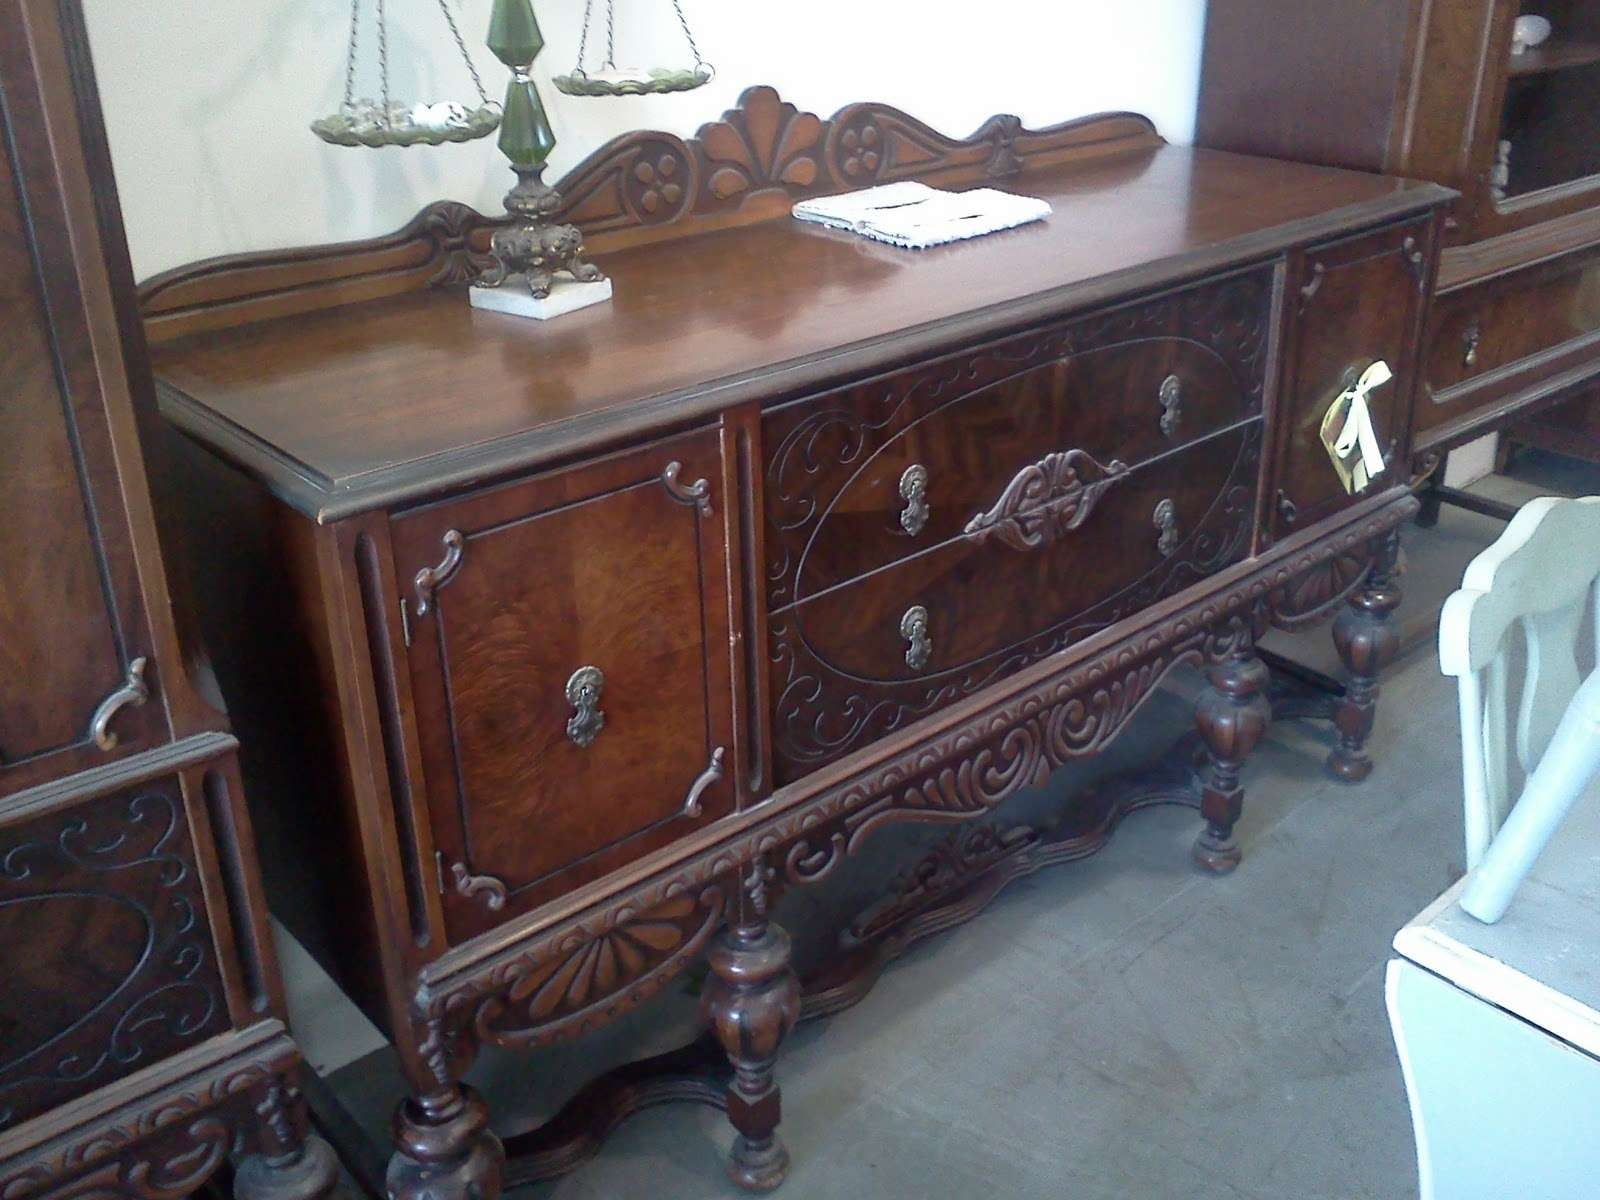 Antique Sideboard Ideas On Pinterest Shabby Chic Sideboard Within Antique Sideboards And Buffets (View 20 of 20)